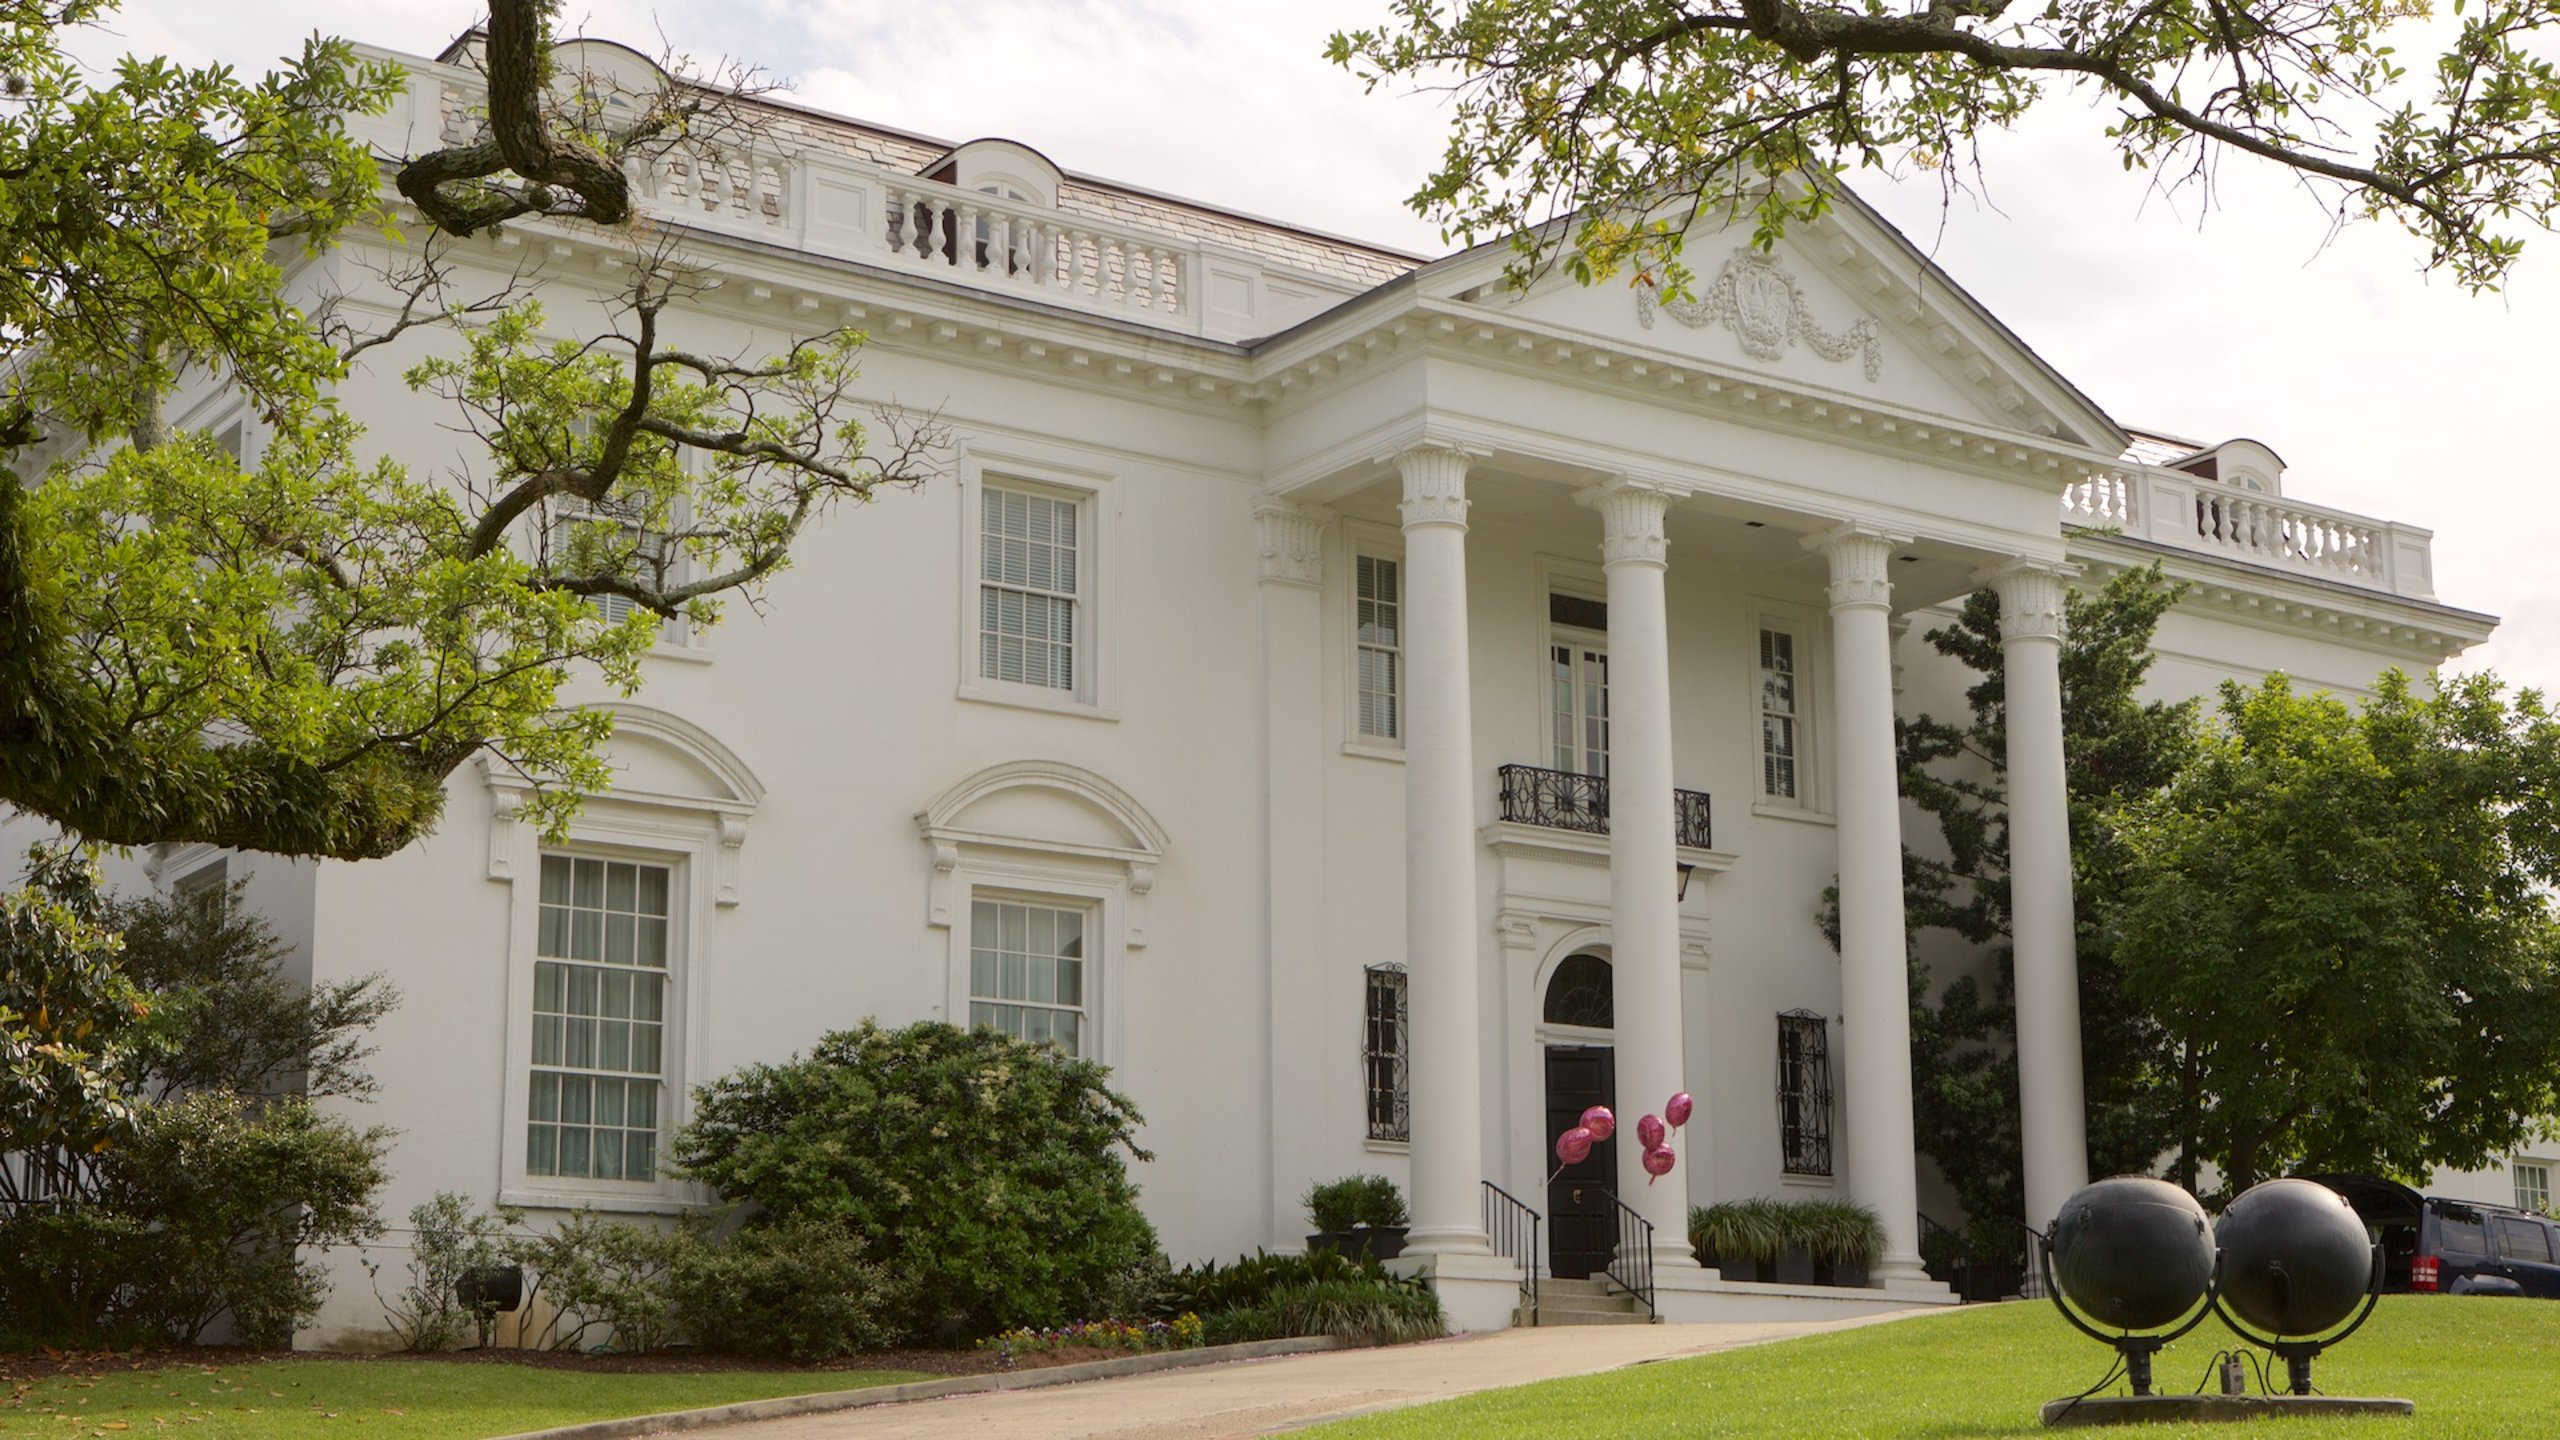 The Old Governor's Mansion, Beauregard Town Historic District, Louisiana, USA